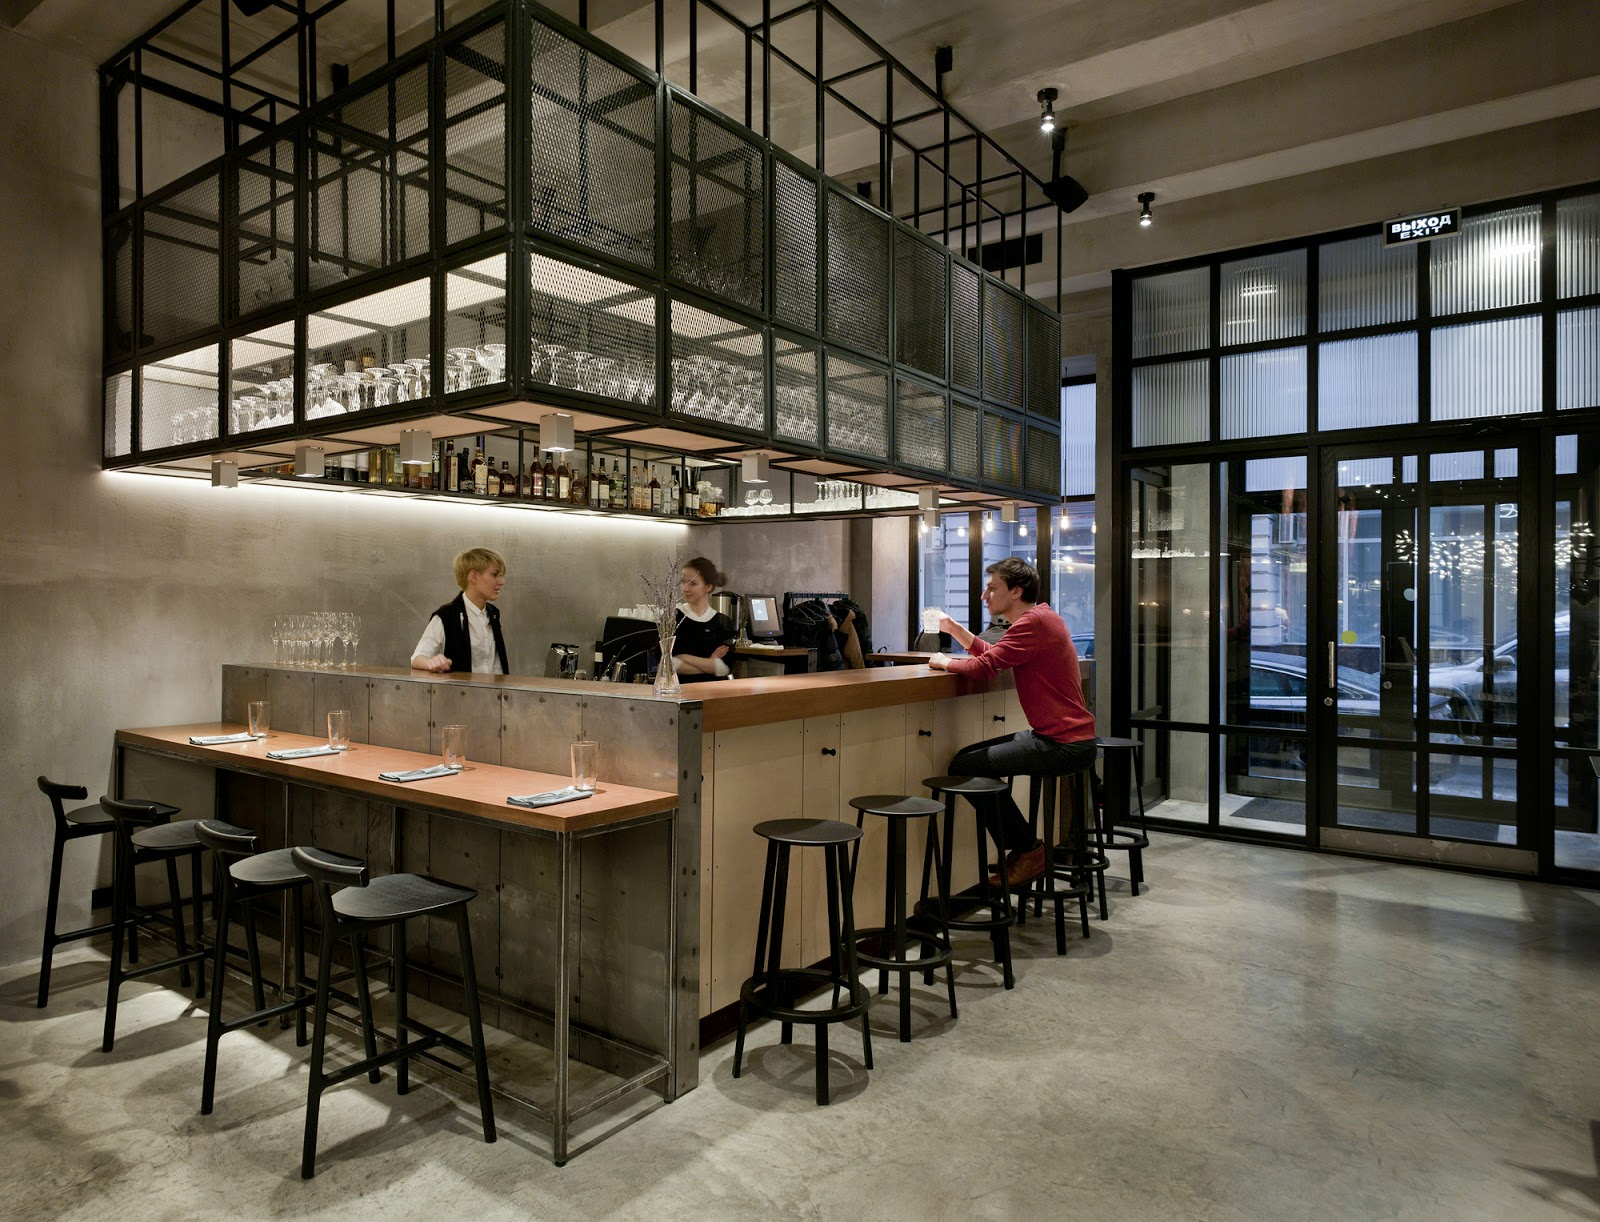 Kaper design restaurant hospitality design inspiration for Interior cafe designs